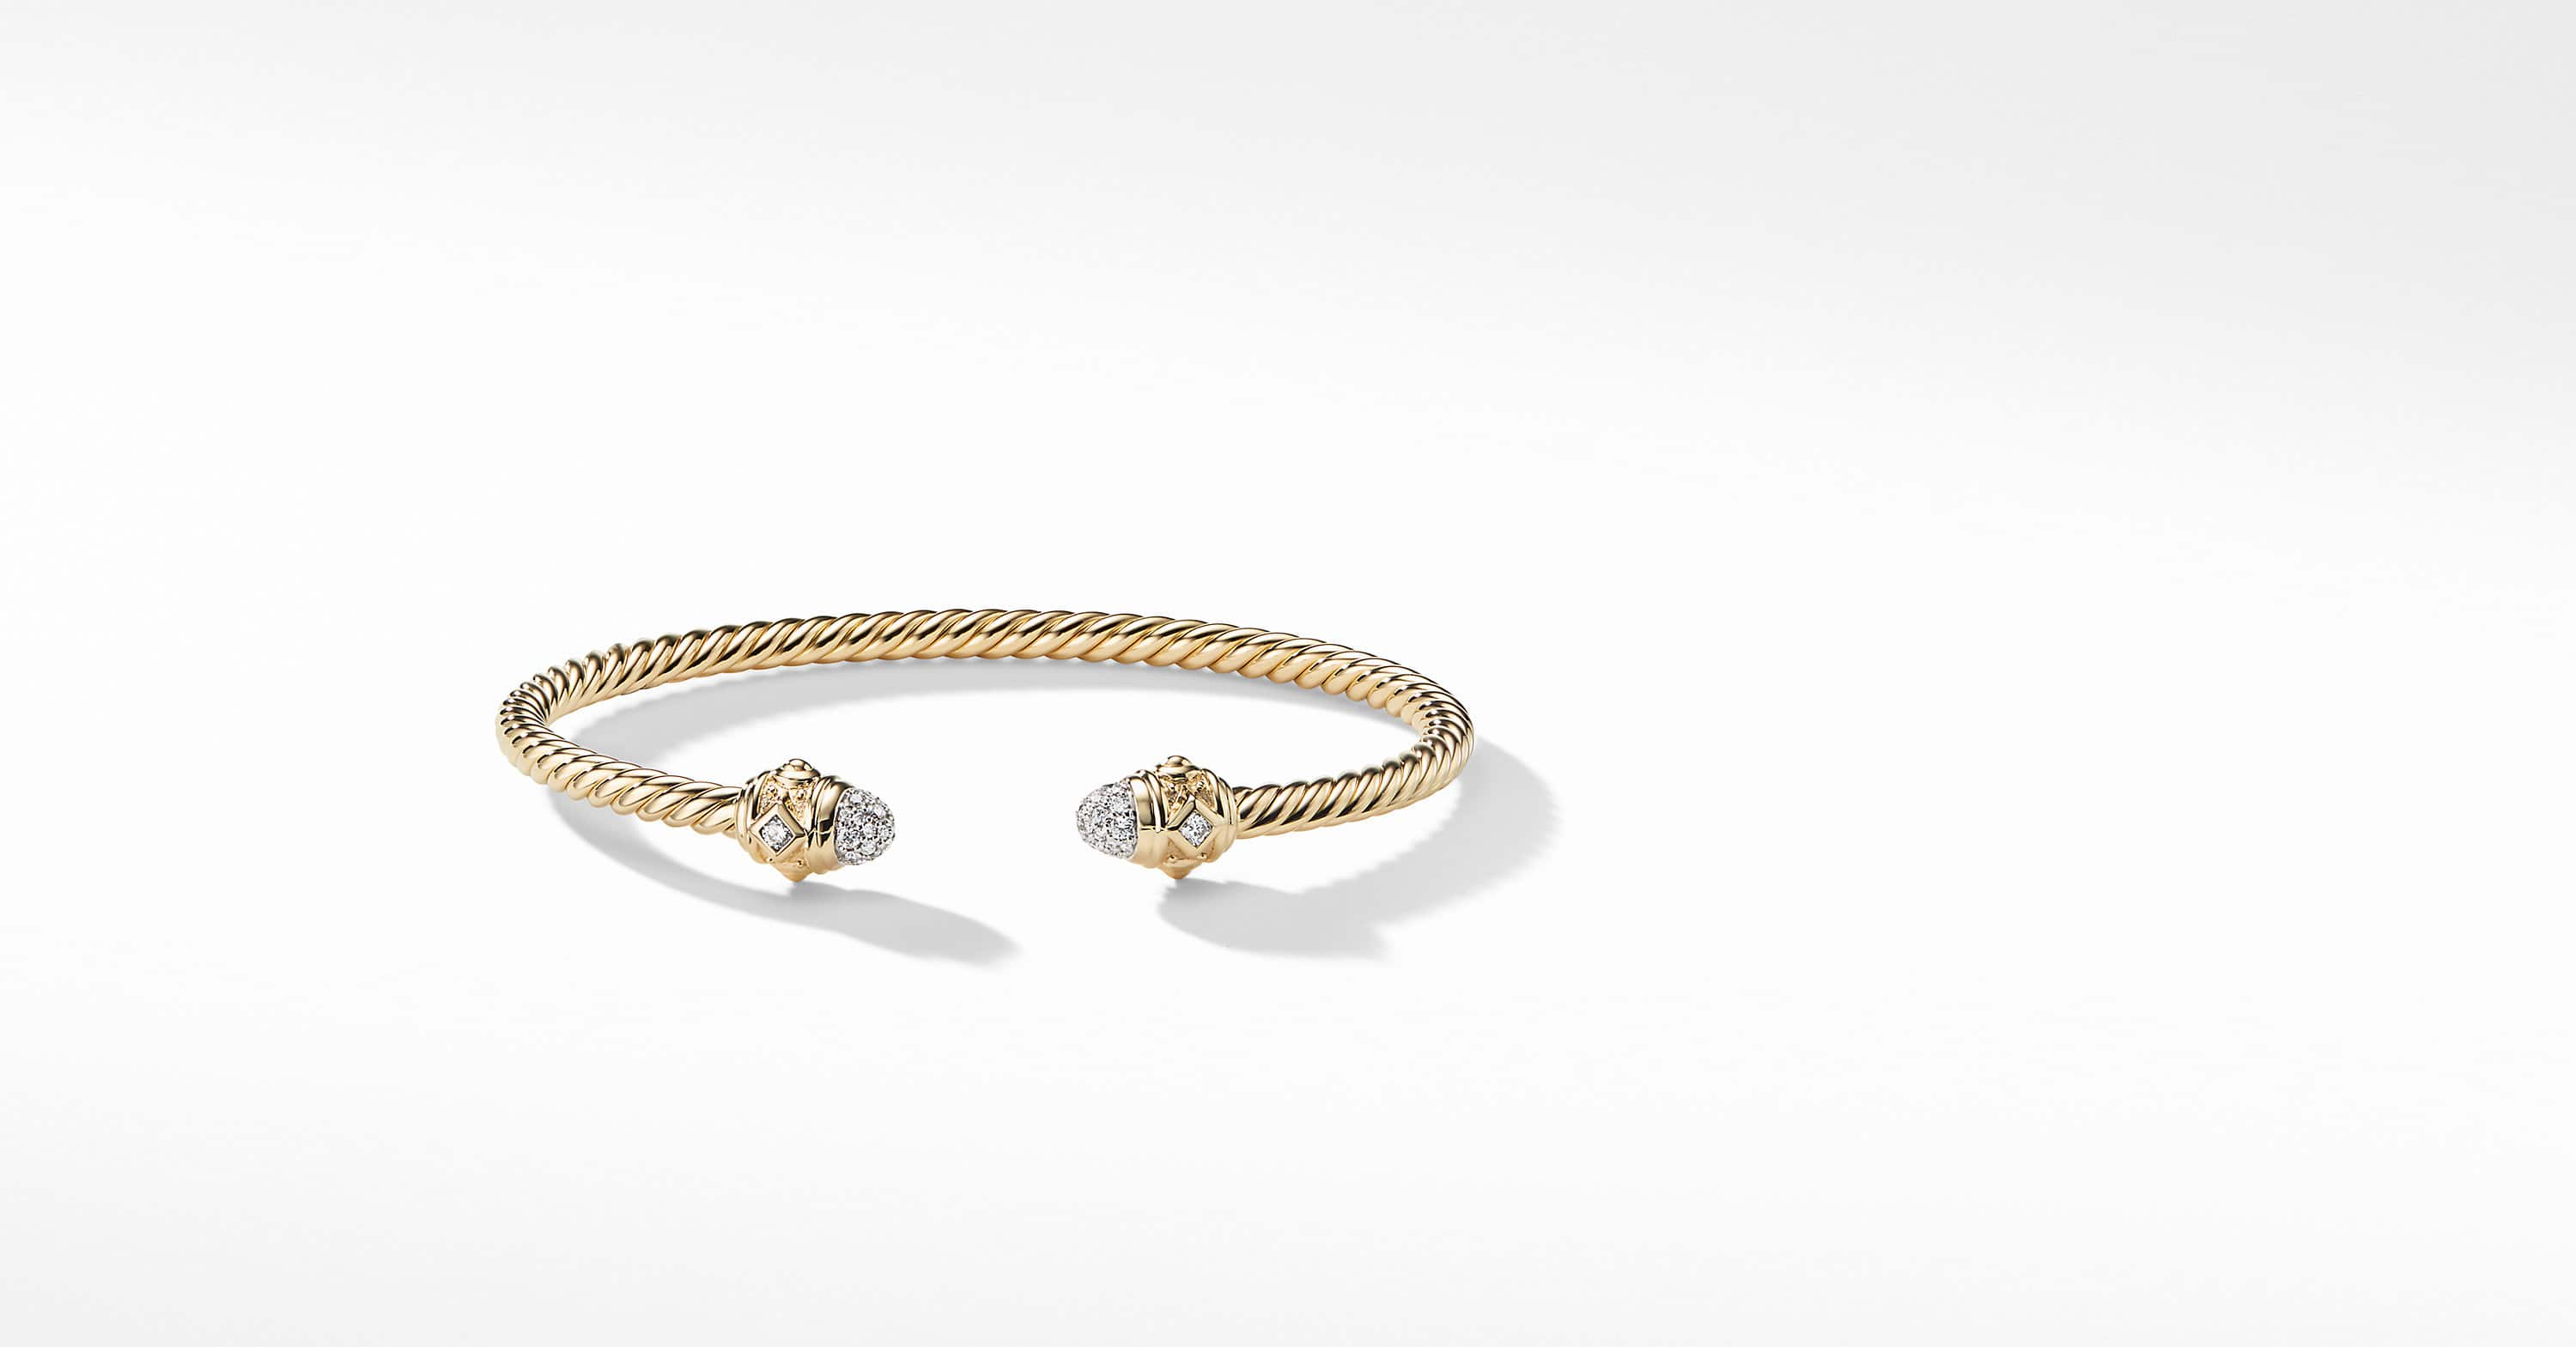 Renaissance Bracelet with Diamonds in 18K Gold, 3.5mm